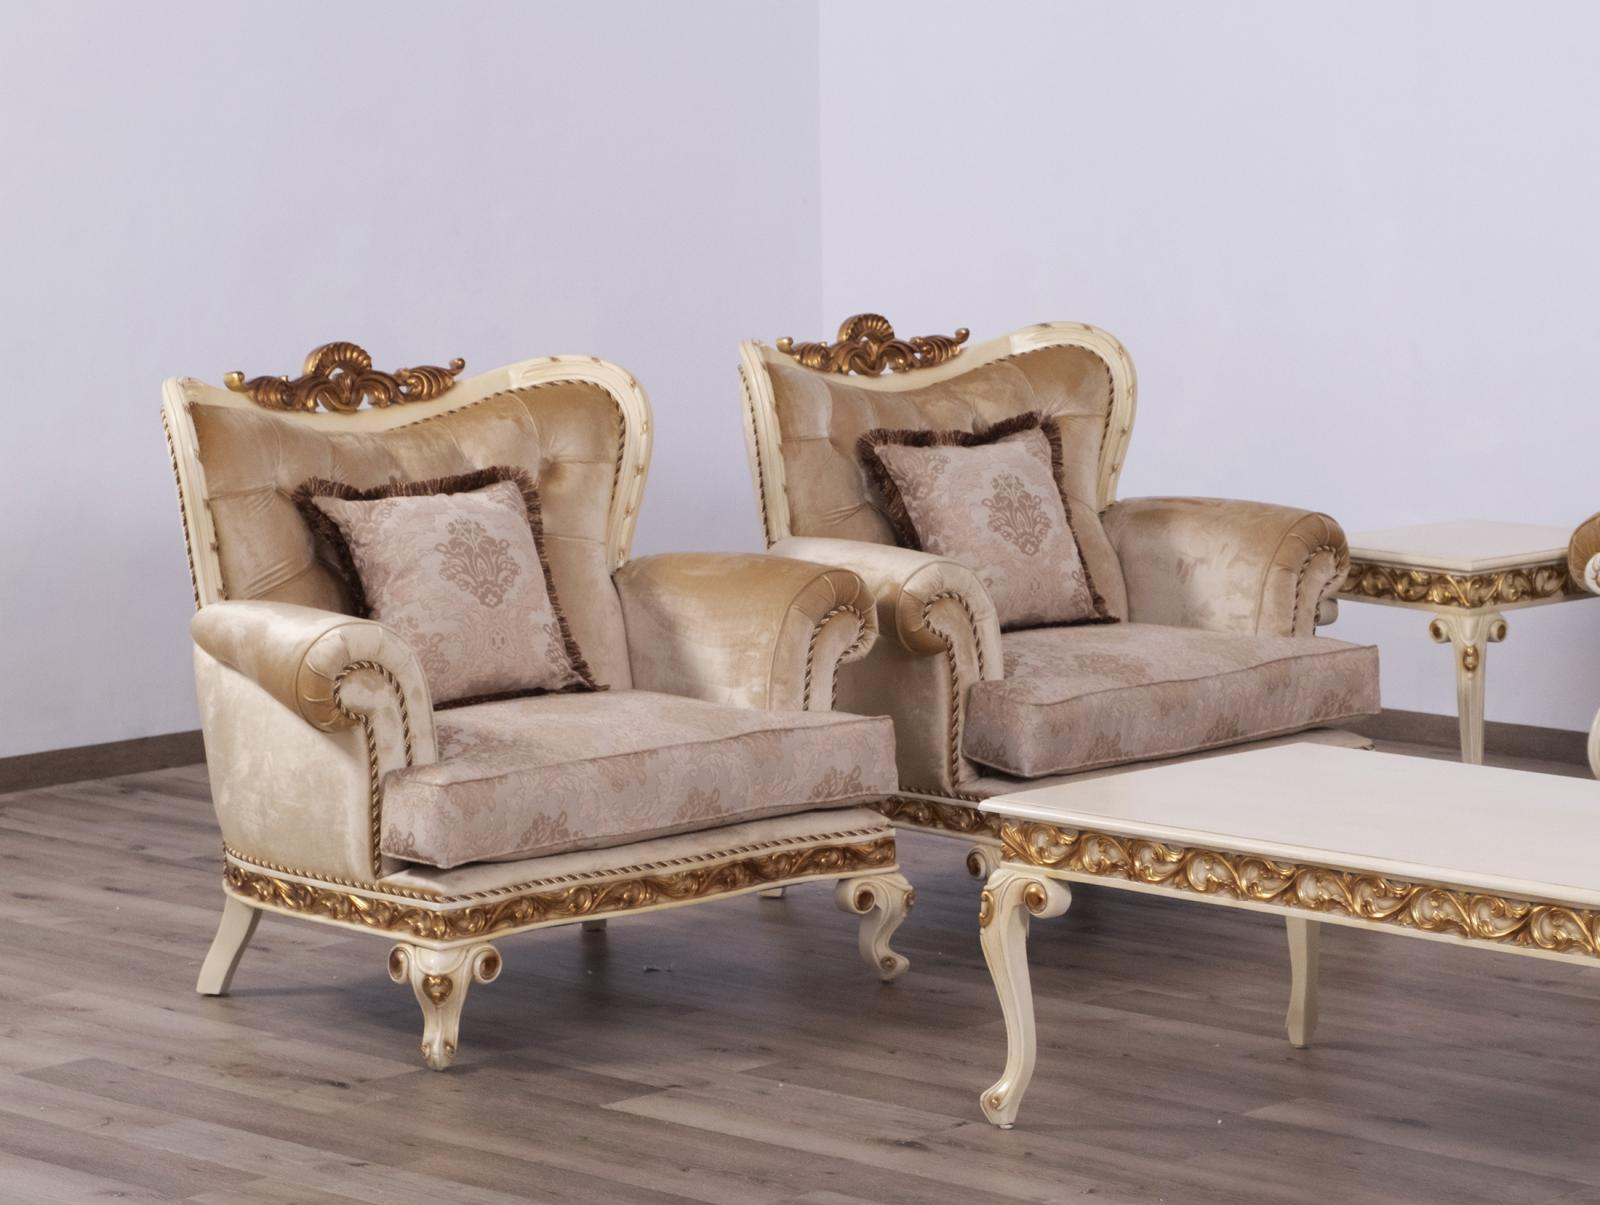 Classic  Traditional Gold  Sand   Beige Wood  Solid Hardwood and Fabric Arm Chair Set EUROPEAN FURNITURE 40017-C-Set-2